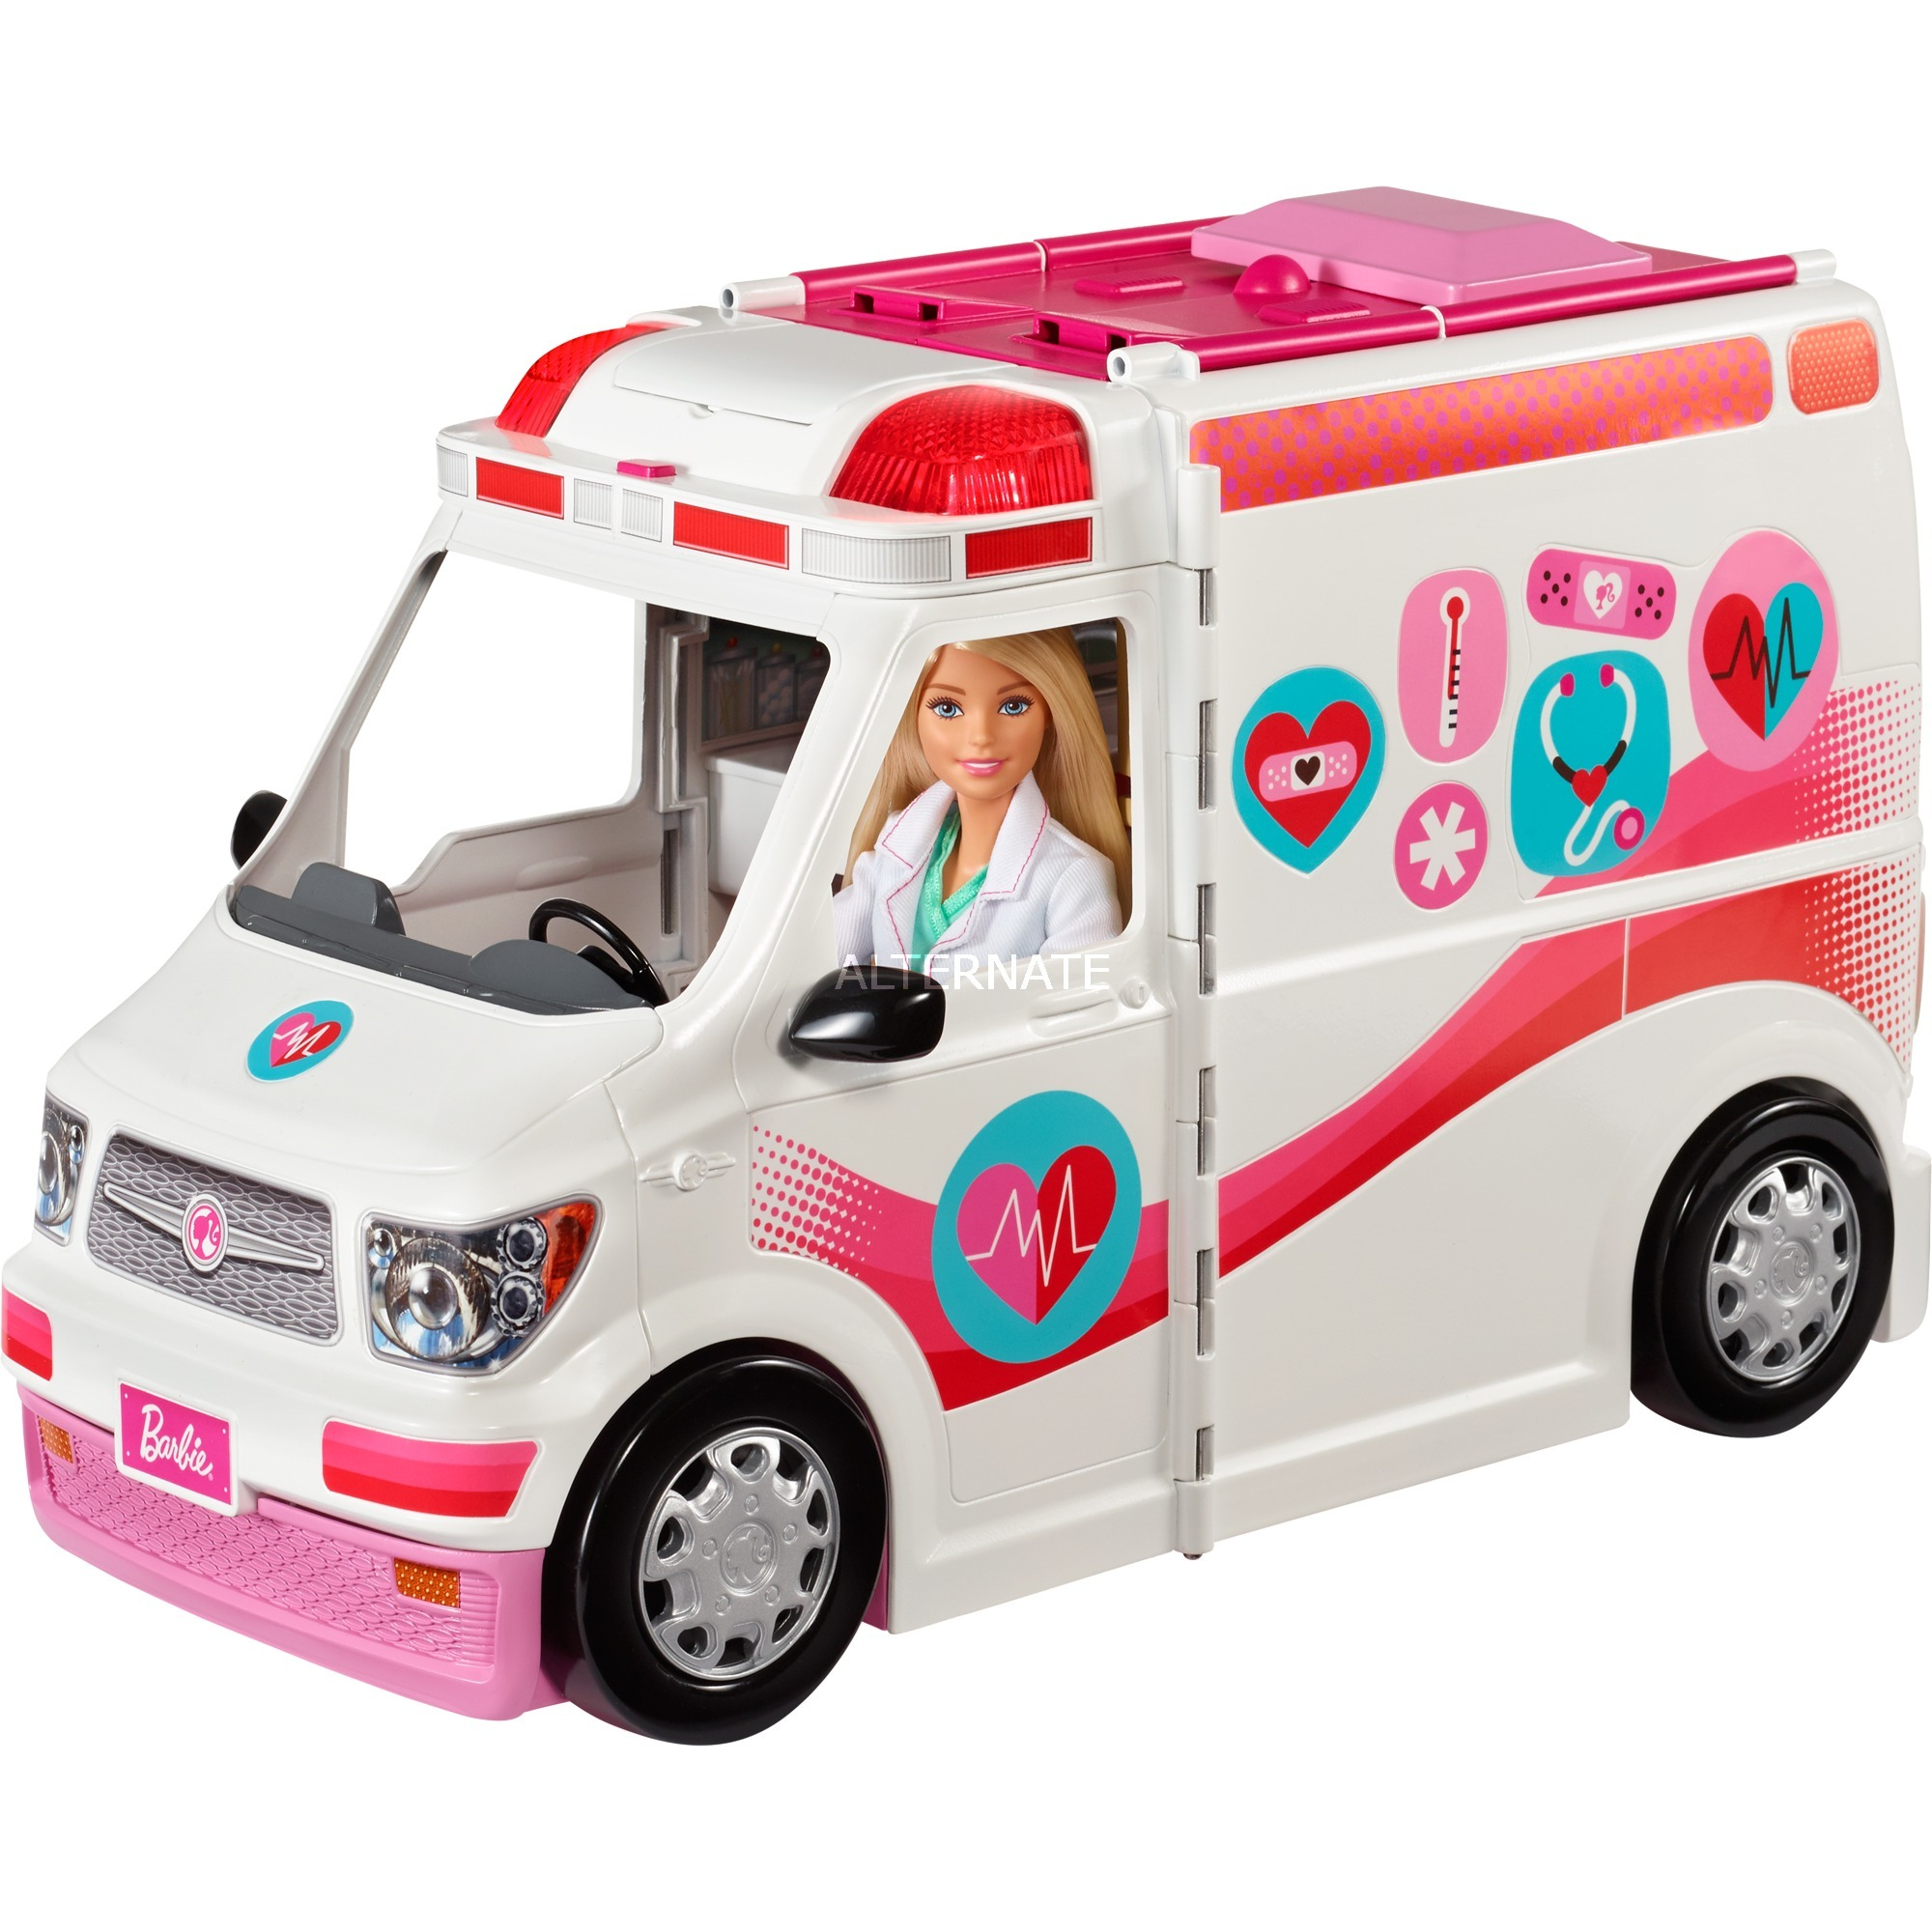 Barbie - Ambulancia de Mascotas